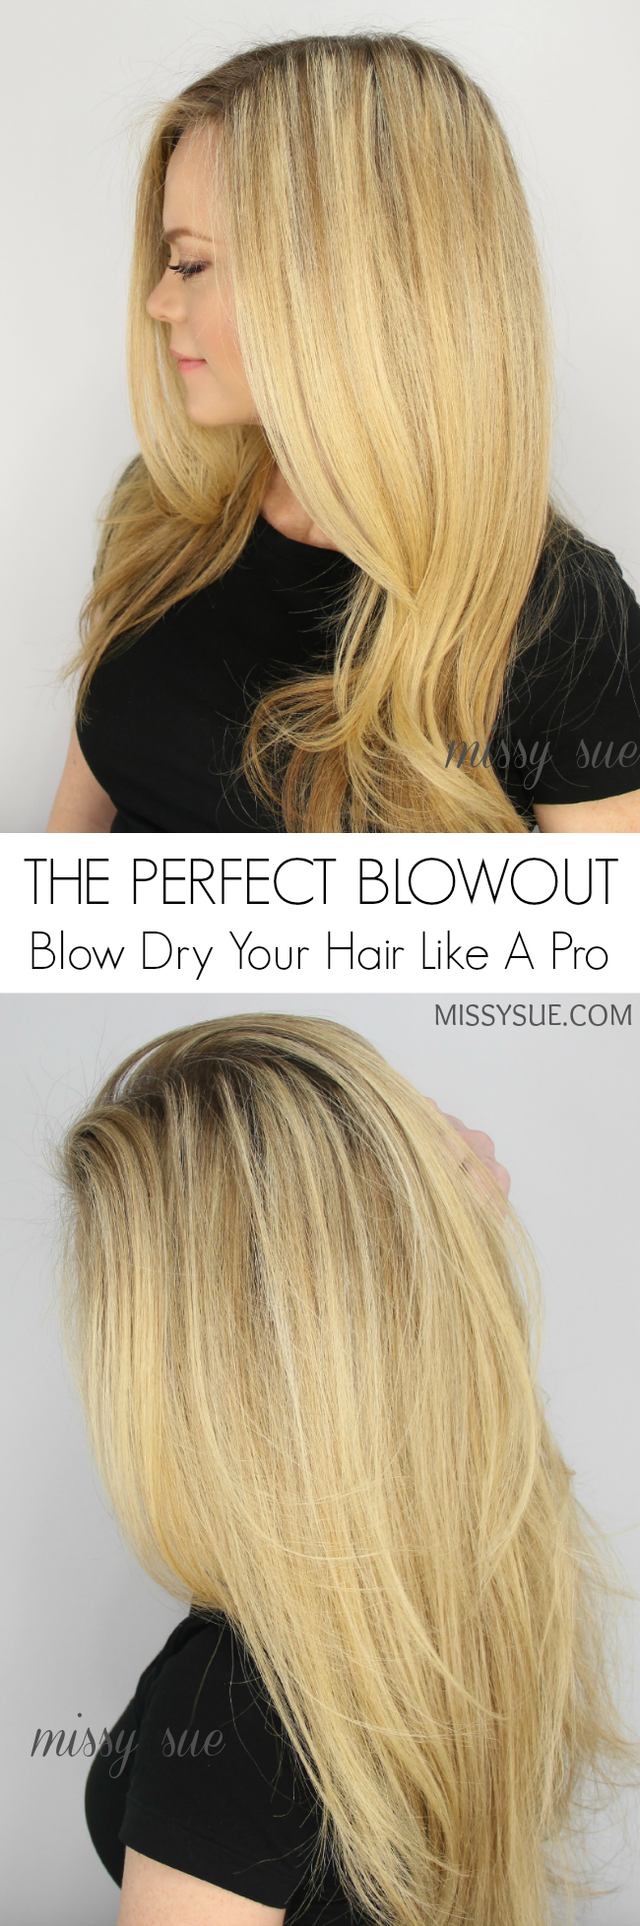 The perfect blowout for everyday missy sue perfect blowout hair